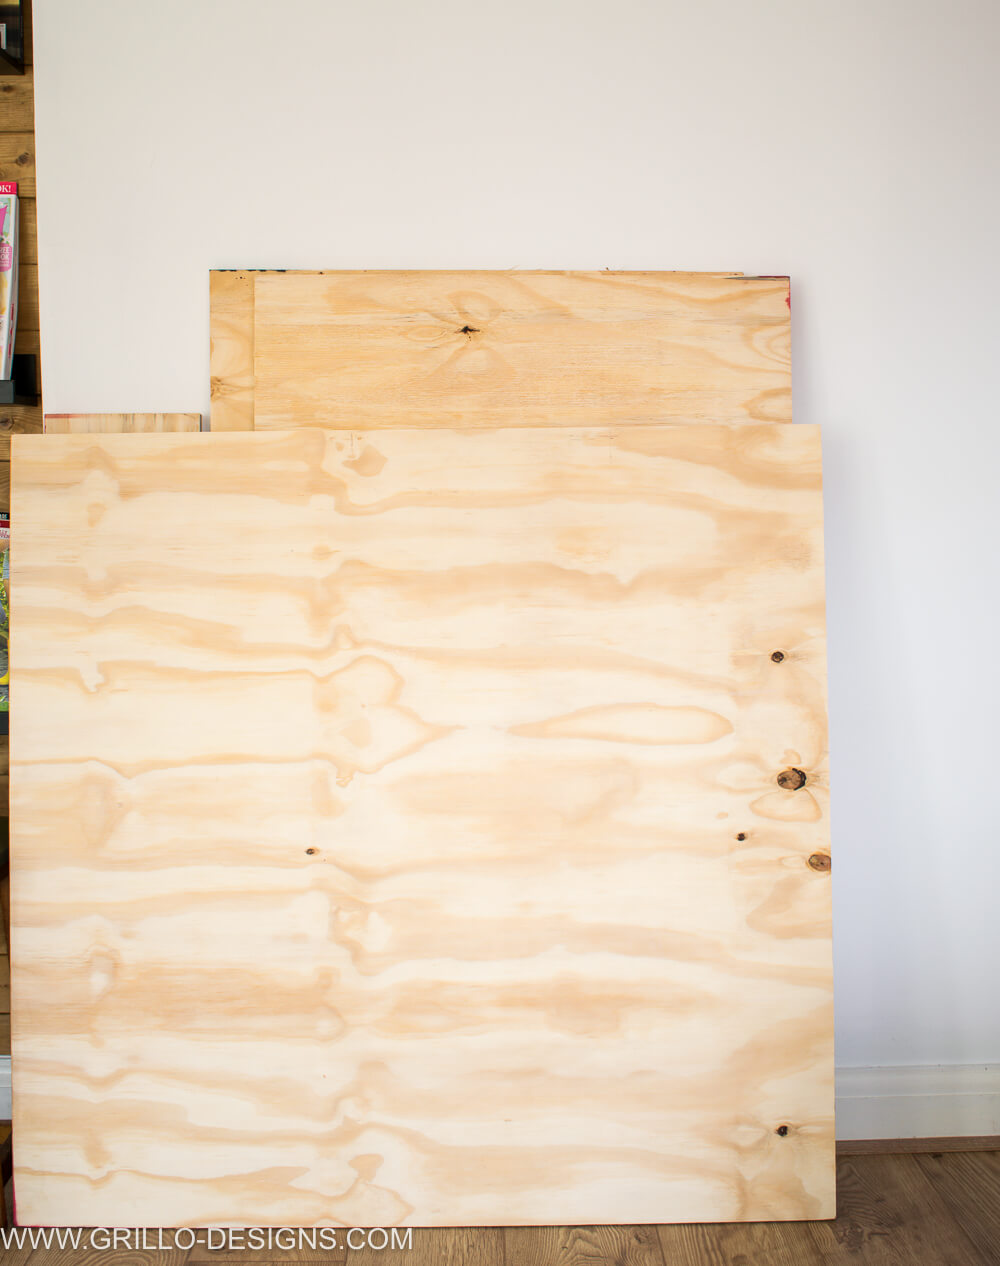 Plywood sheet propped up against a white wall